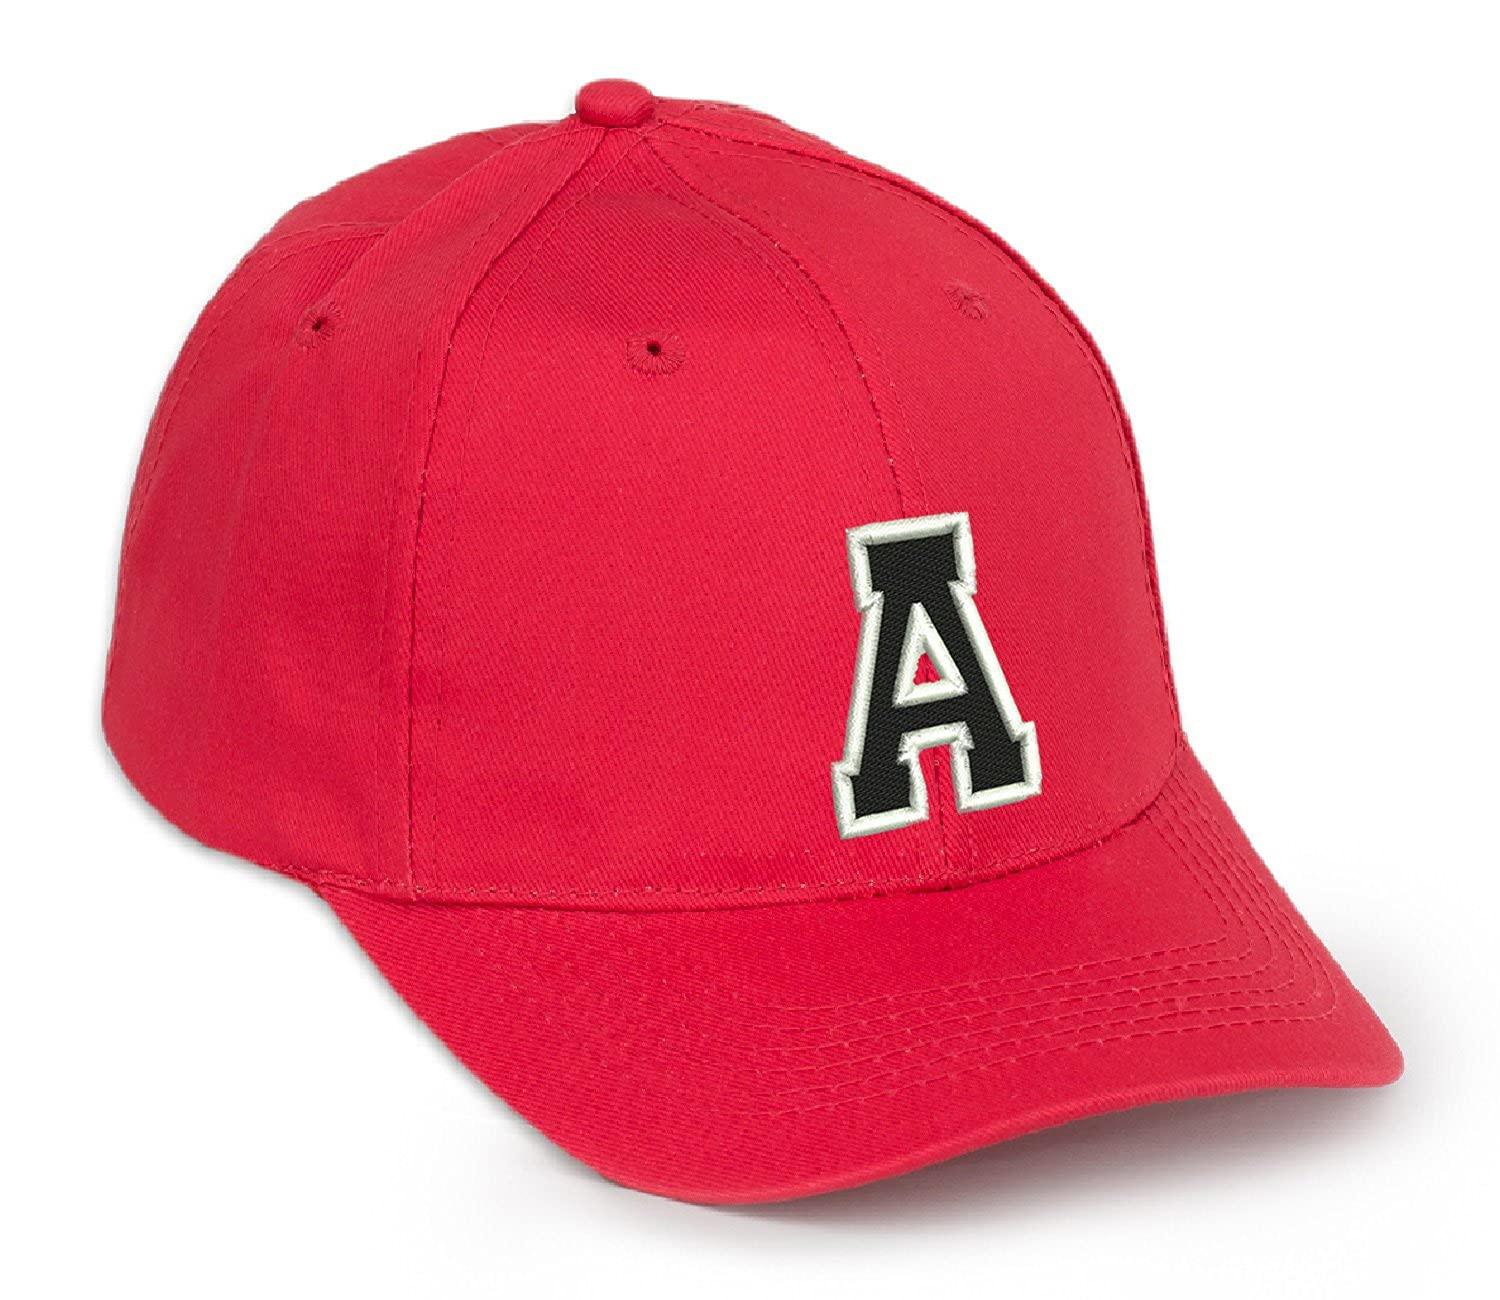 4sold Casual Cotton Baseball Cap Alphabet A-Z Red Caps Black Letter Snap Back Hat Hats Snapback A-z letters black